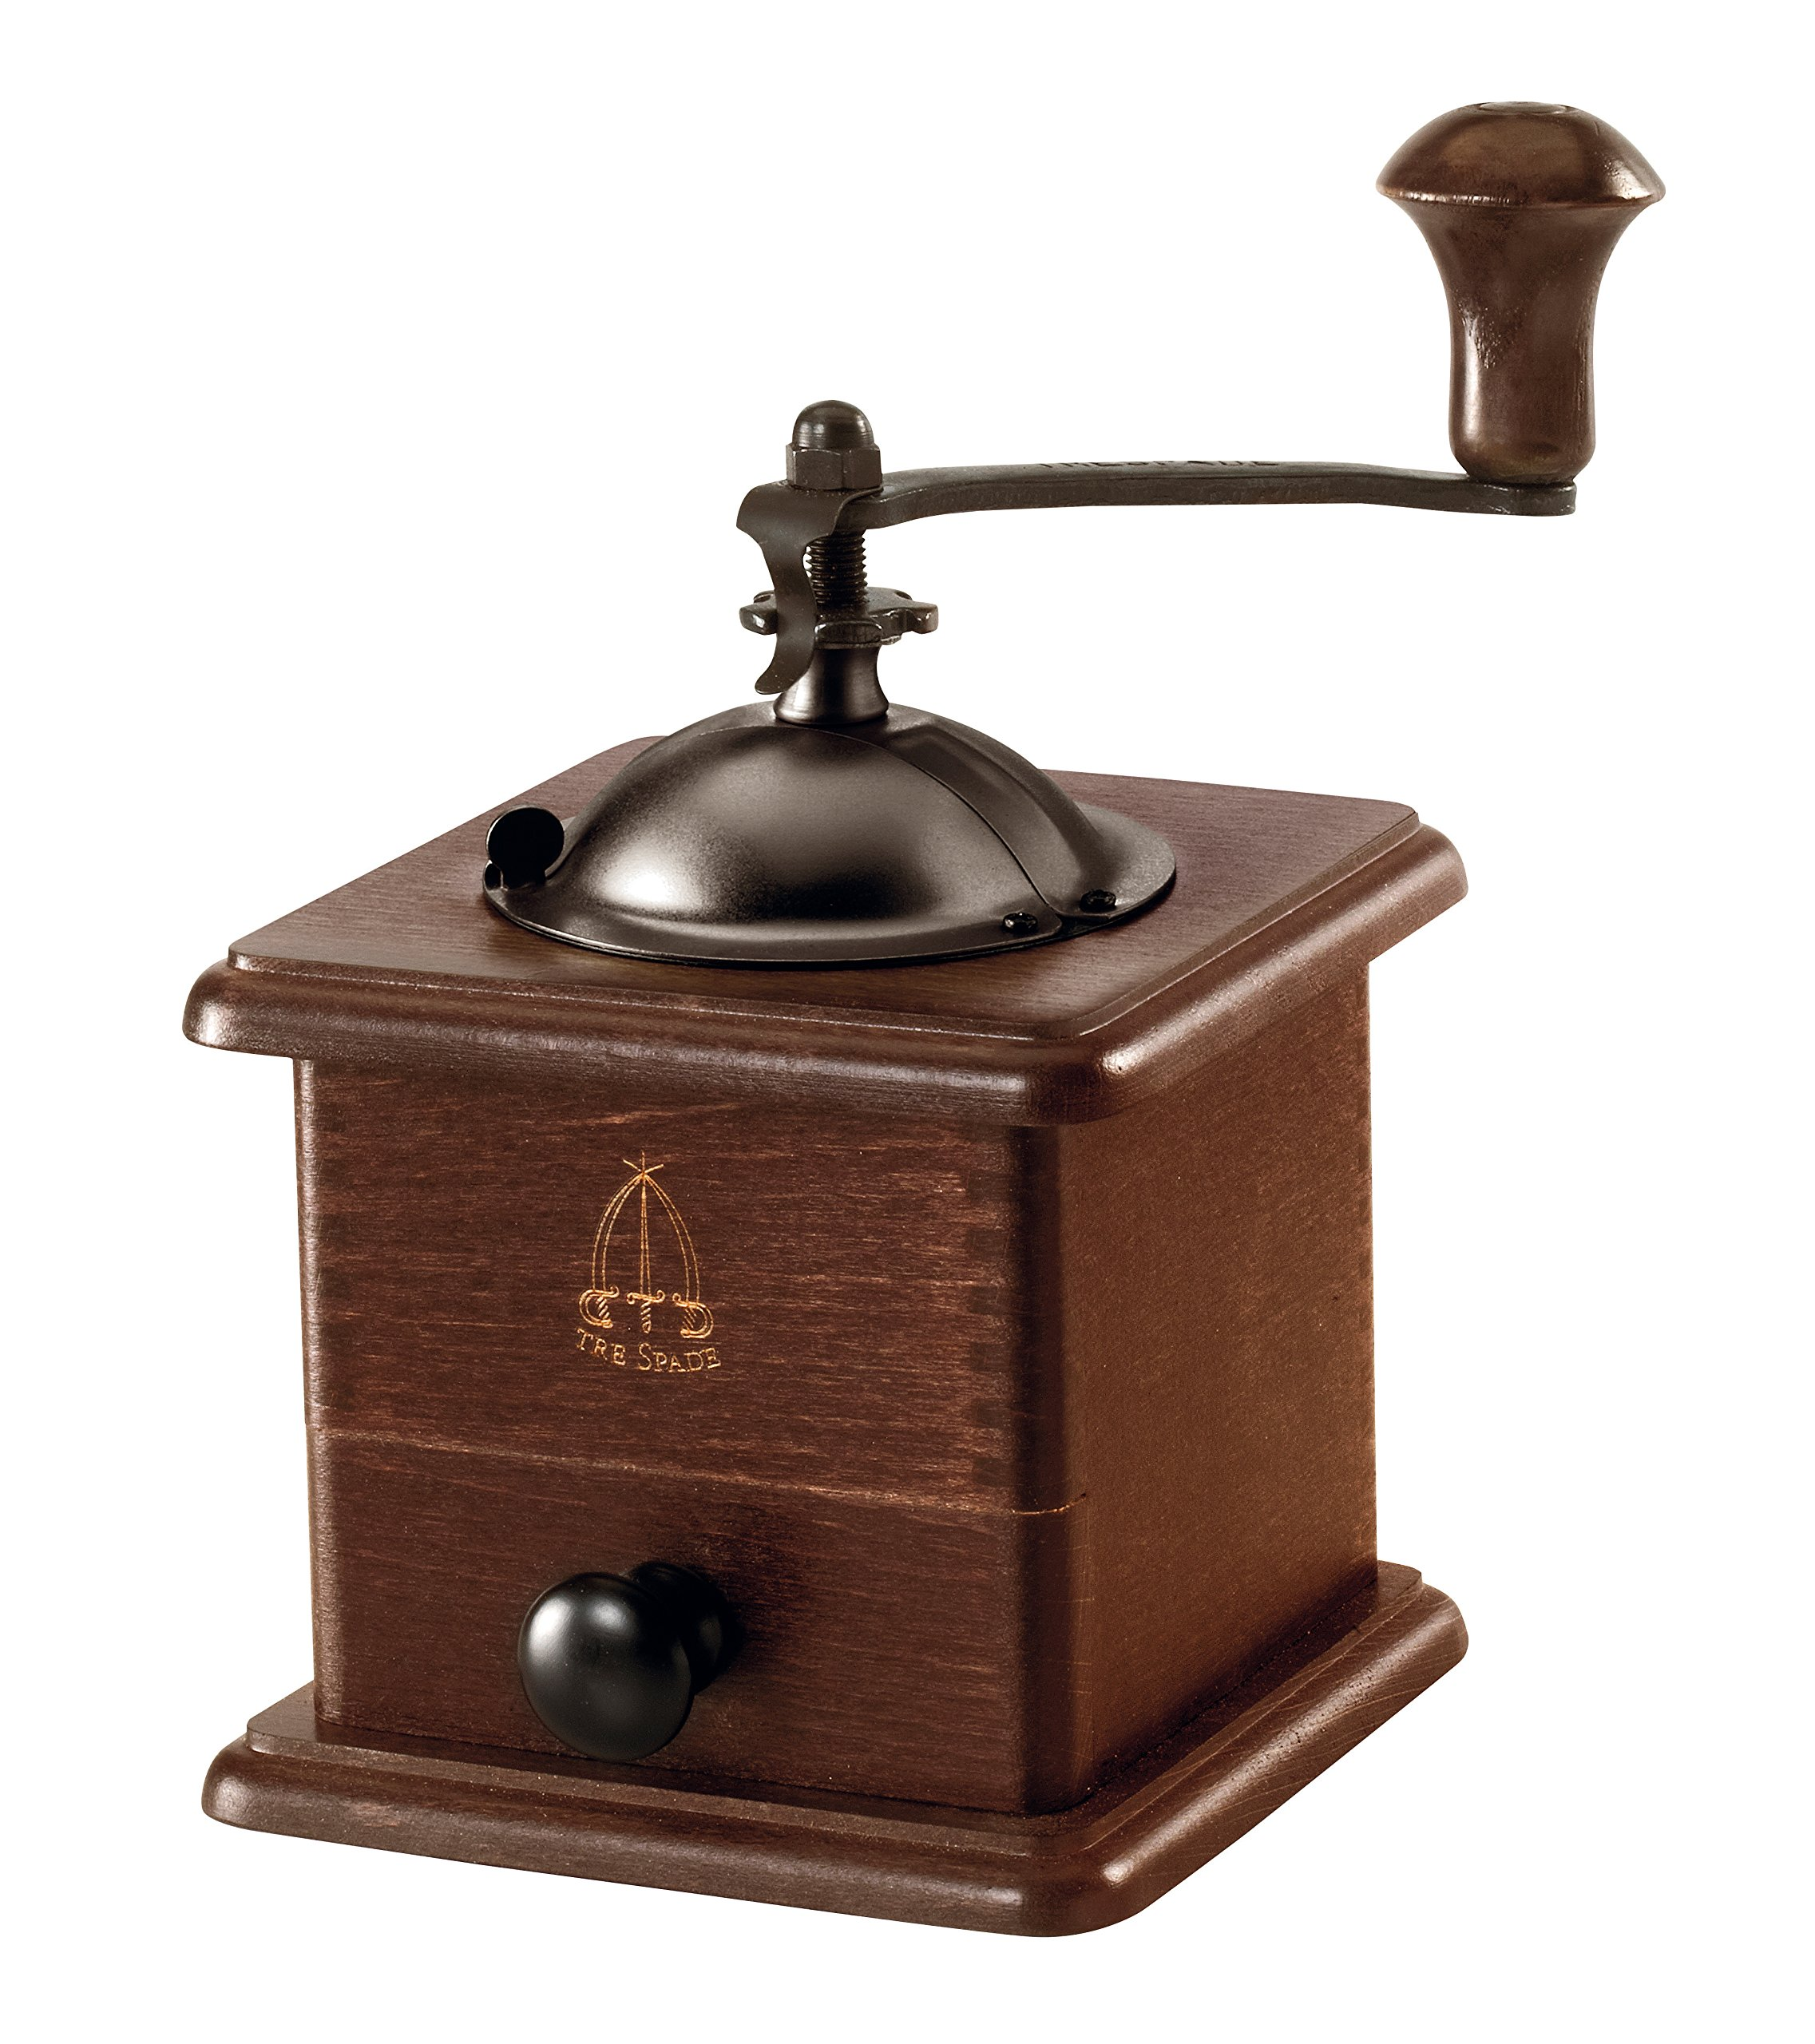 Paderno World Cuisine A4982344 Beechwood Manual Coffee Grinder, Brown by Paderno World Cuisine (Image #1)